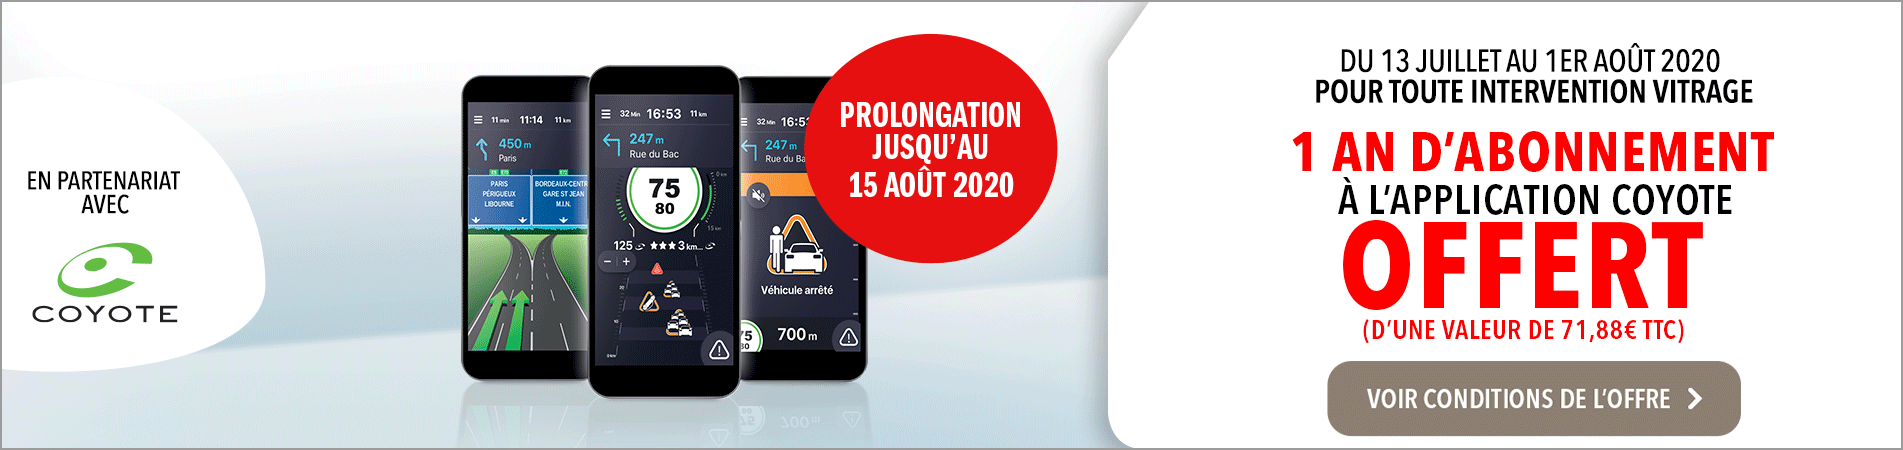 1 an offert d'abonnement à l'application coyote avec carglass®